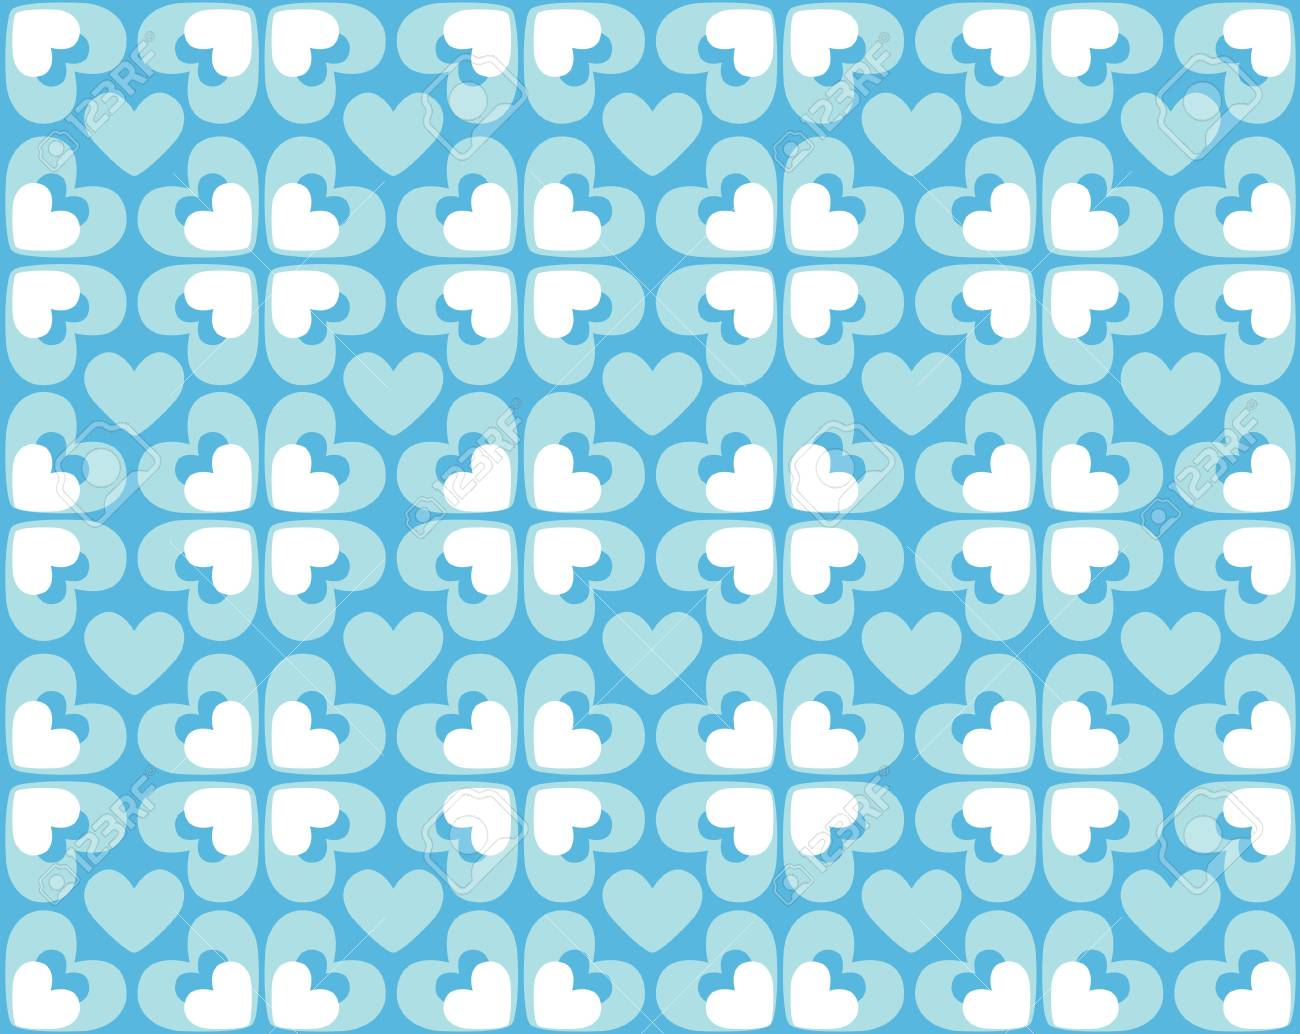 Seamless blue and white pattern of hearts Stock Photo - 4897529